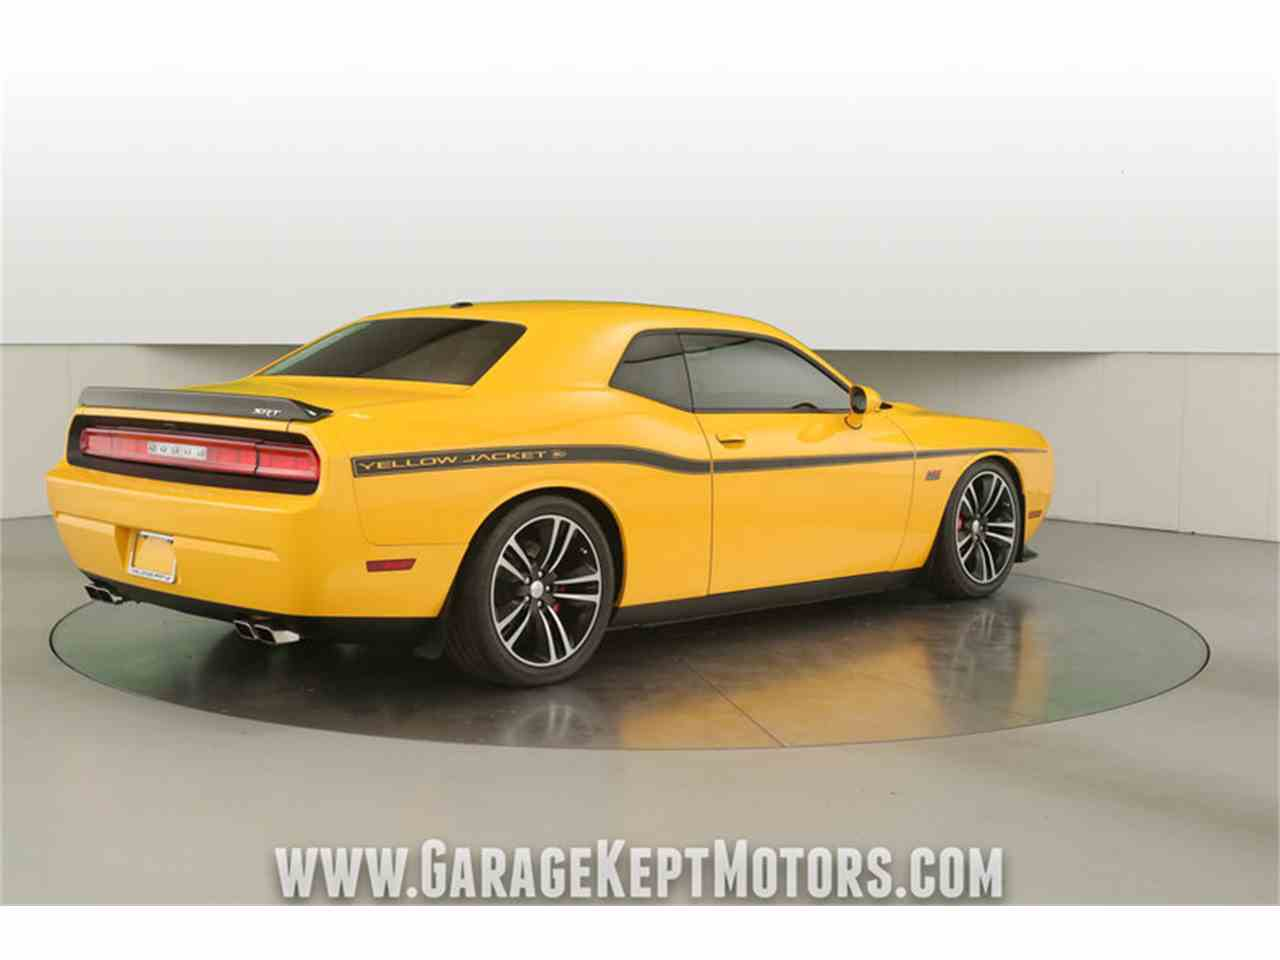 Large Picture of '12 Challenger SRT8 392 Yellow Jacket - $36,500.00 - MAXR